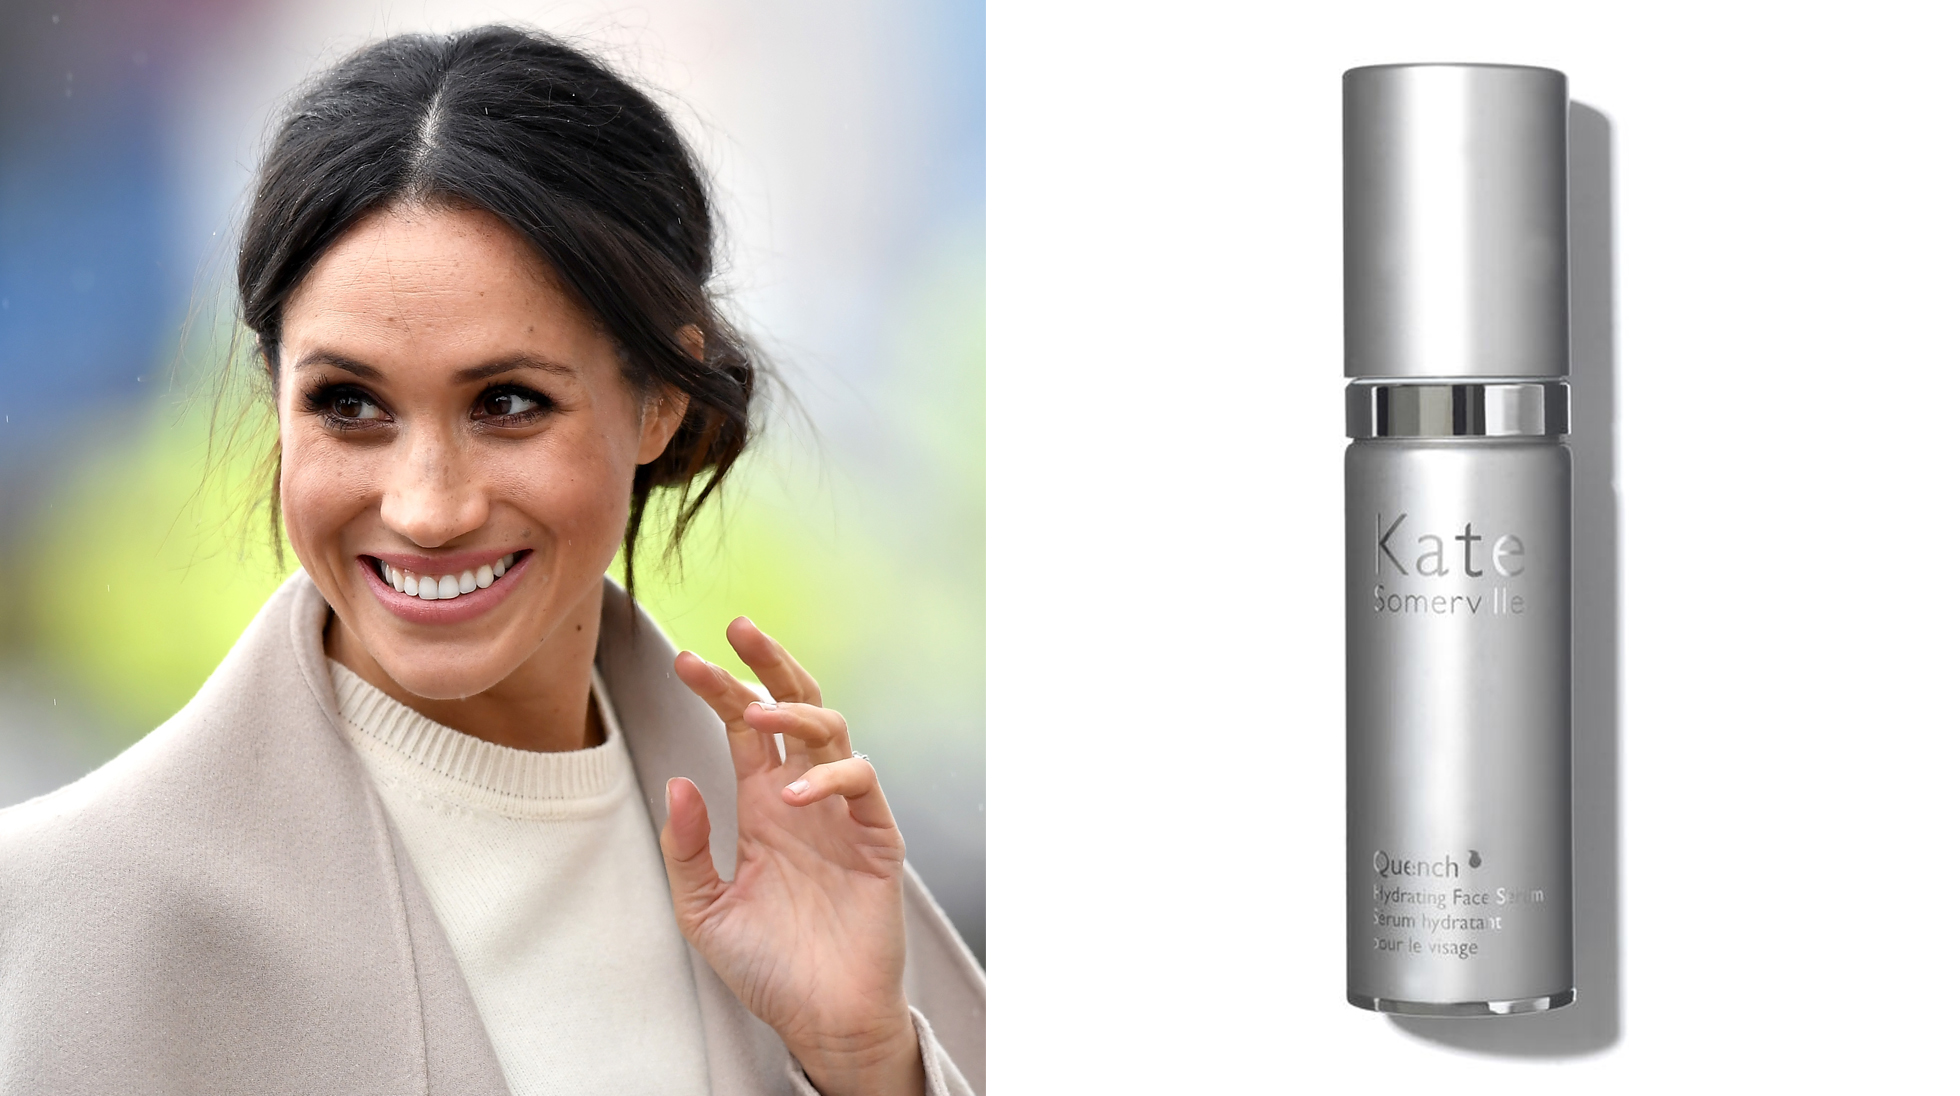 Productos de belleza celebrities: Meghan Markle